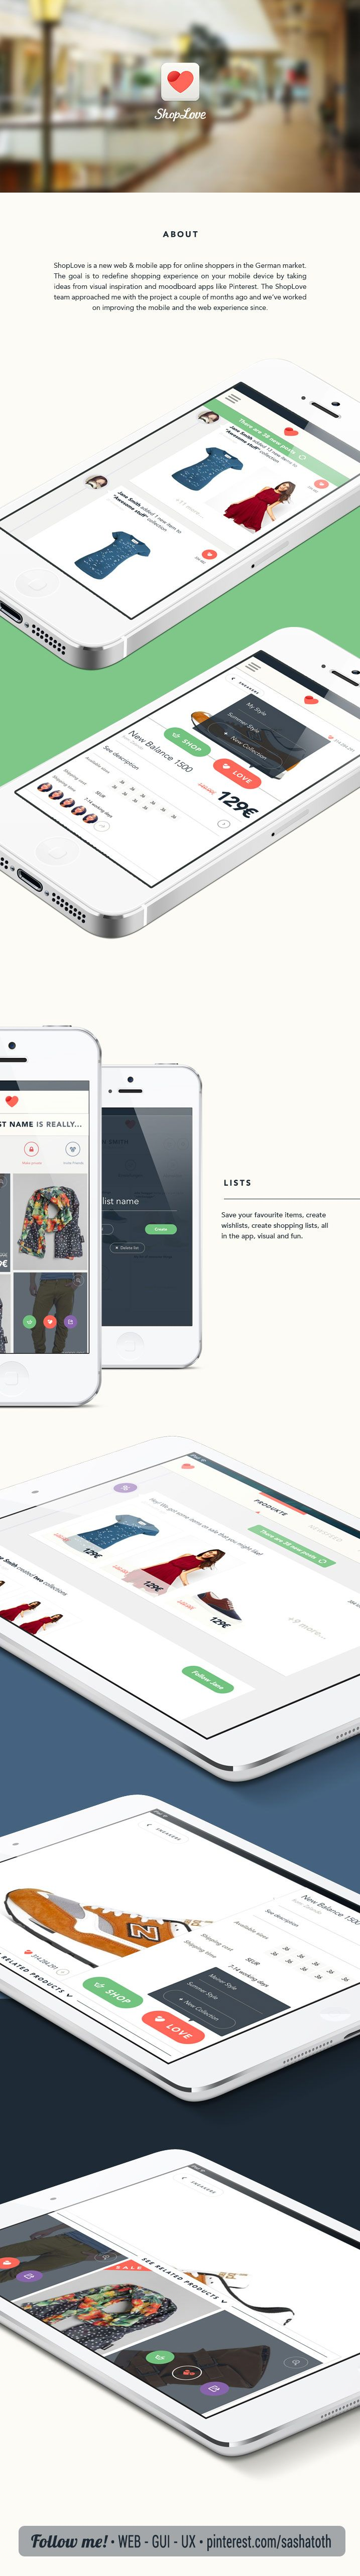 """ShopLOVE concept """"ShopLove is a visual shopping web and mobile app aimed at the German market. The work I did included user experience design, iOS UI design, web design and icon design."""" by Mariusz Ciesla, via Behance *** #app #gui #ui #behance"""